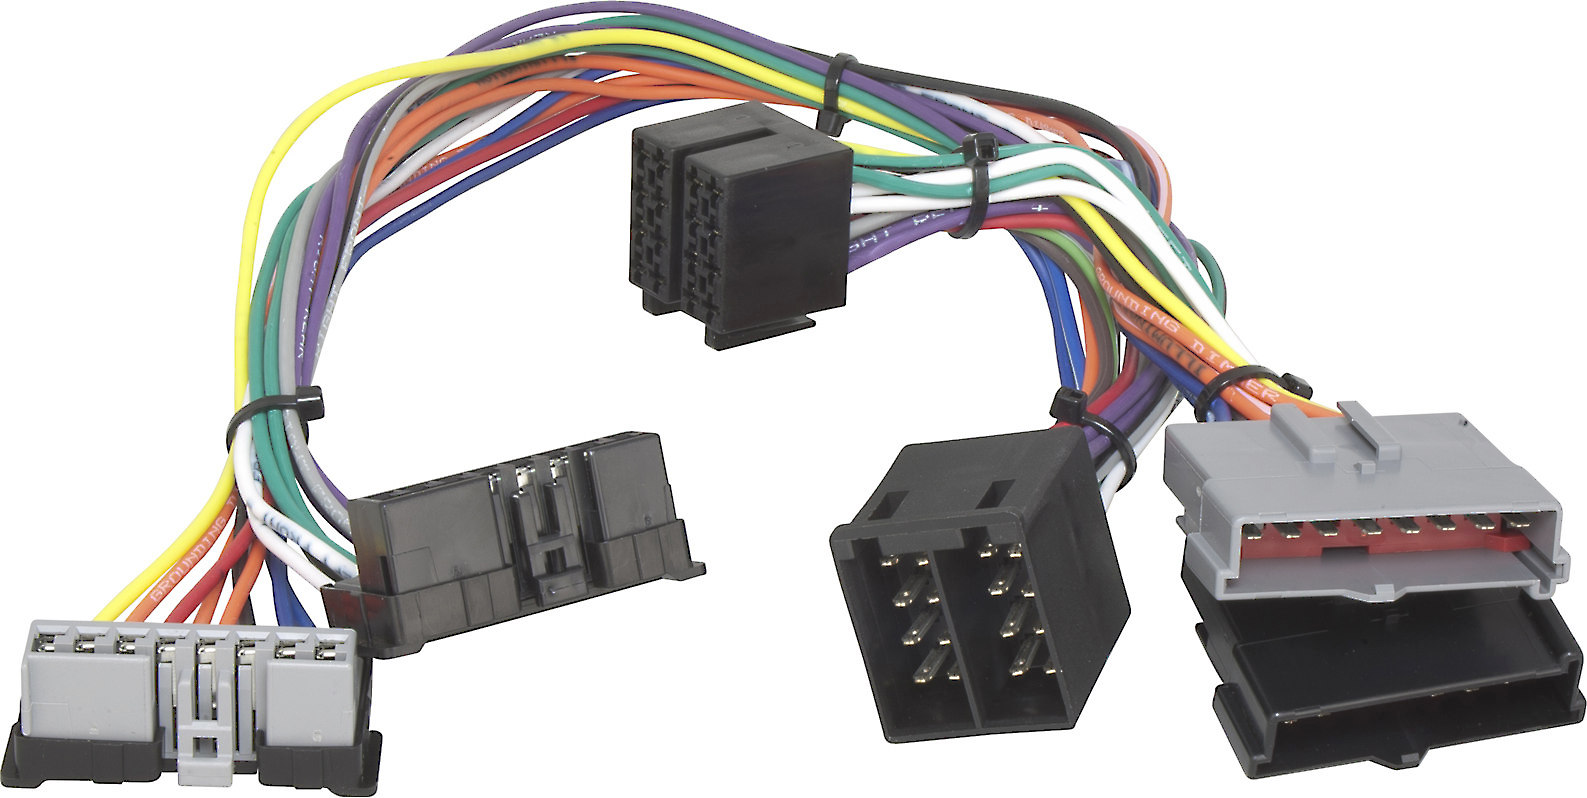 hight resolution of ford bluetooth wiring harness connects parrot bluetooth cell phone kits to the factory stereo in select 1986 2002 ford vehicles at crutchfield